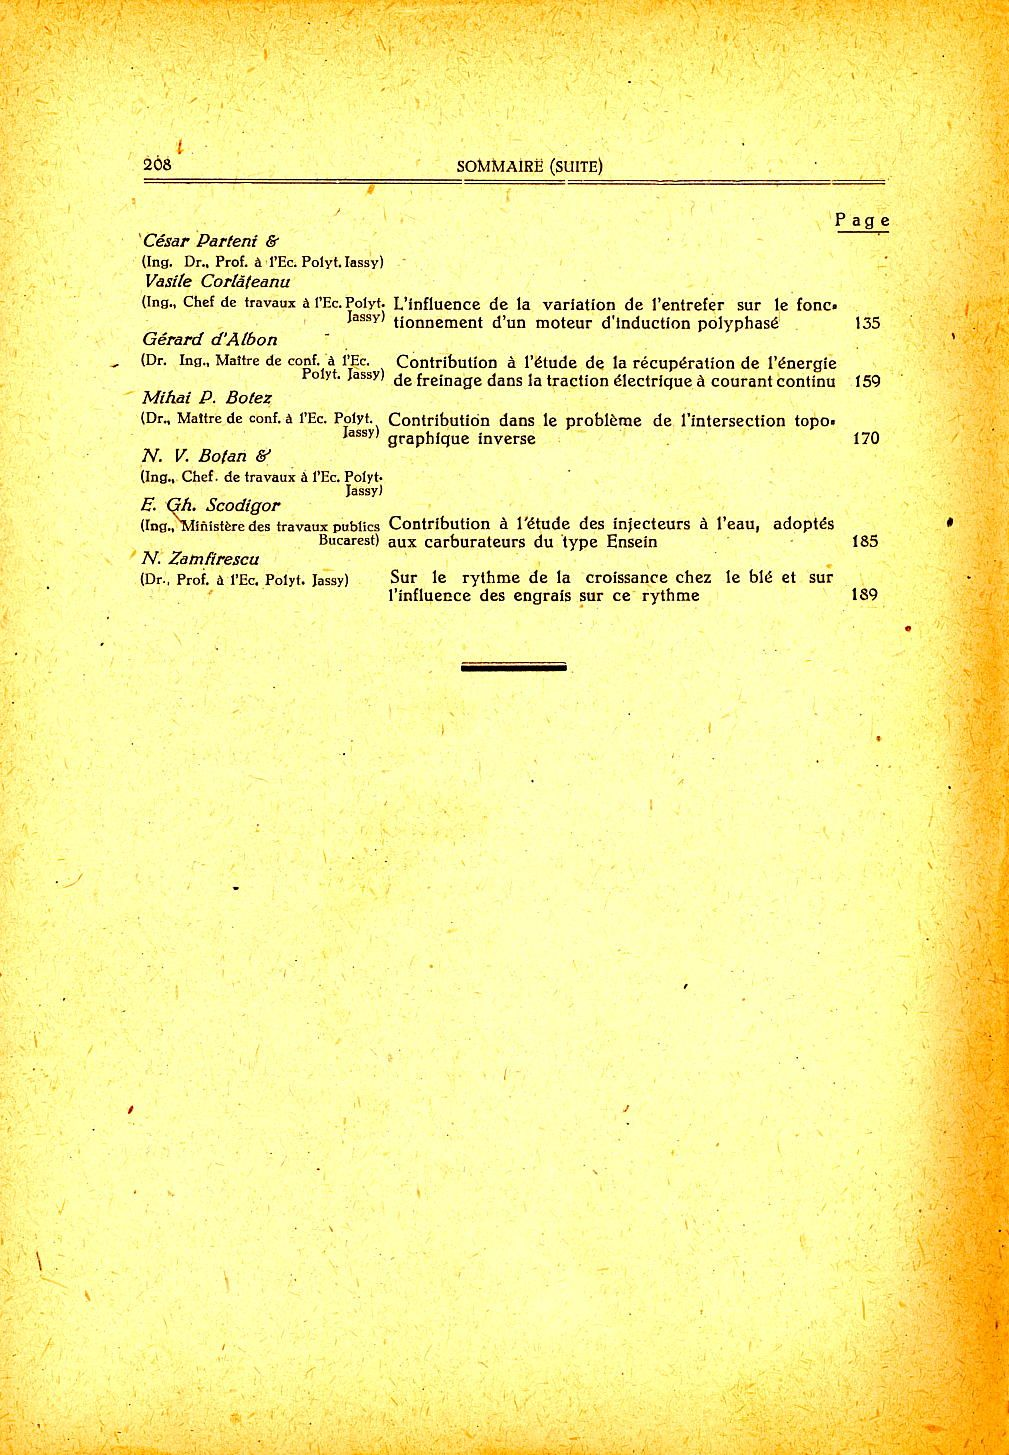 BulIPI First papers in Electrical Engineering